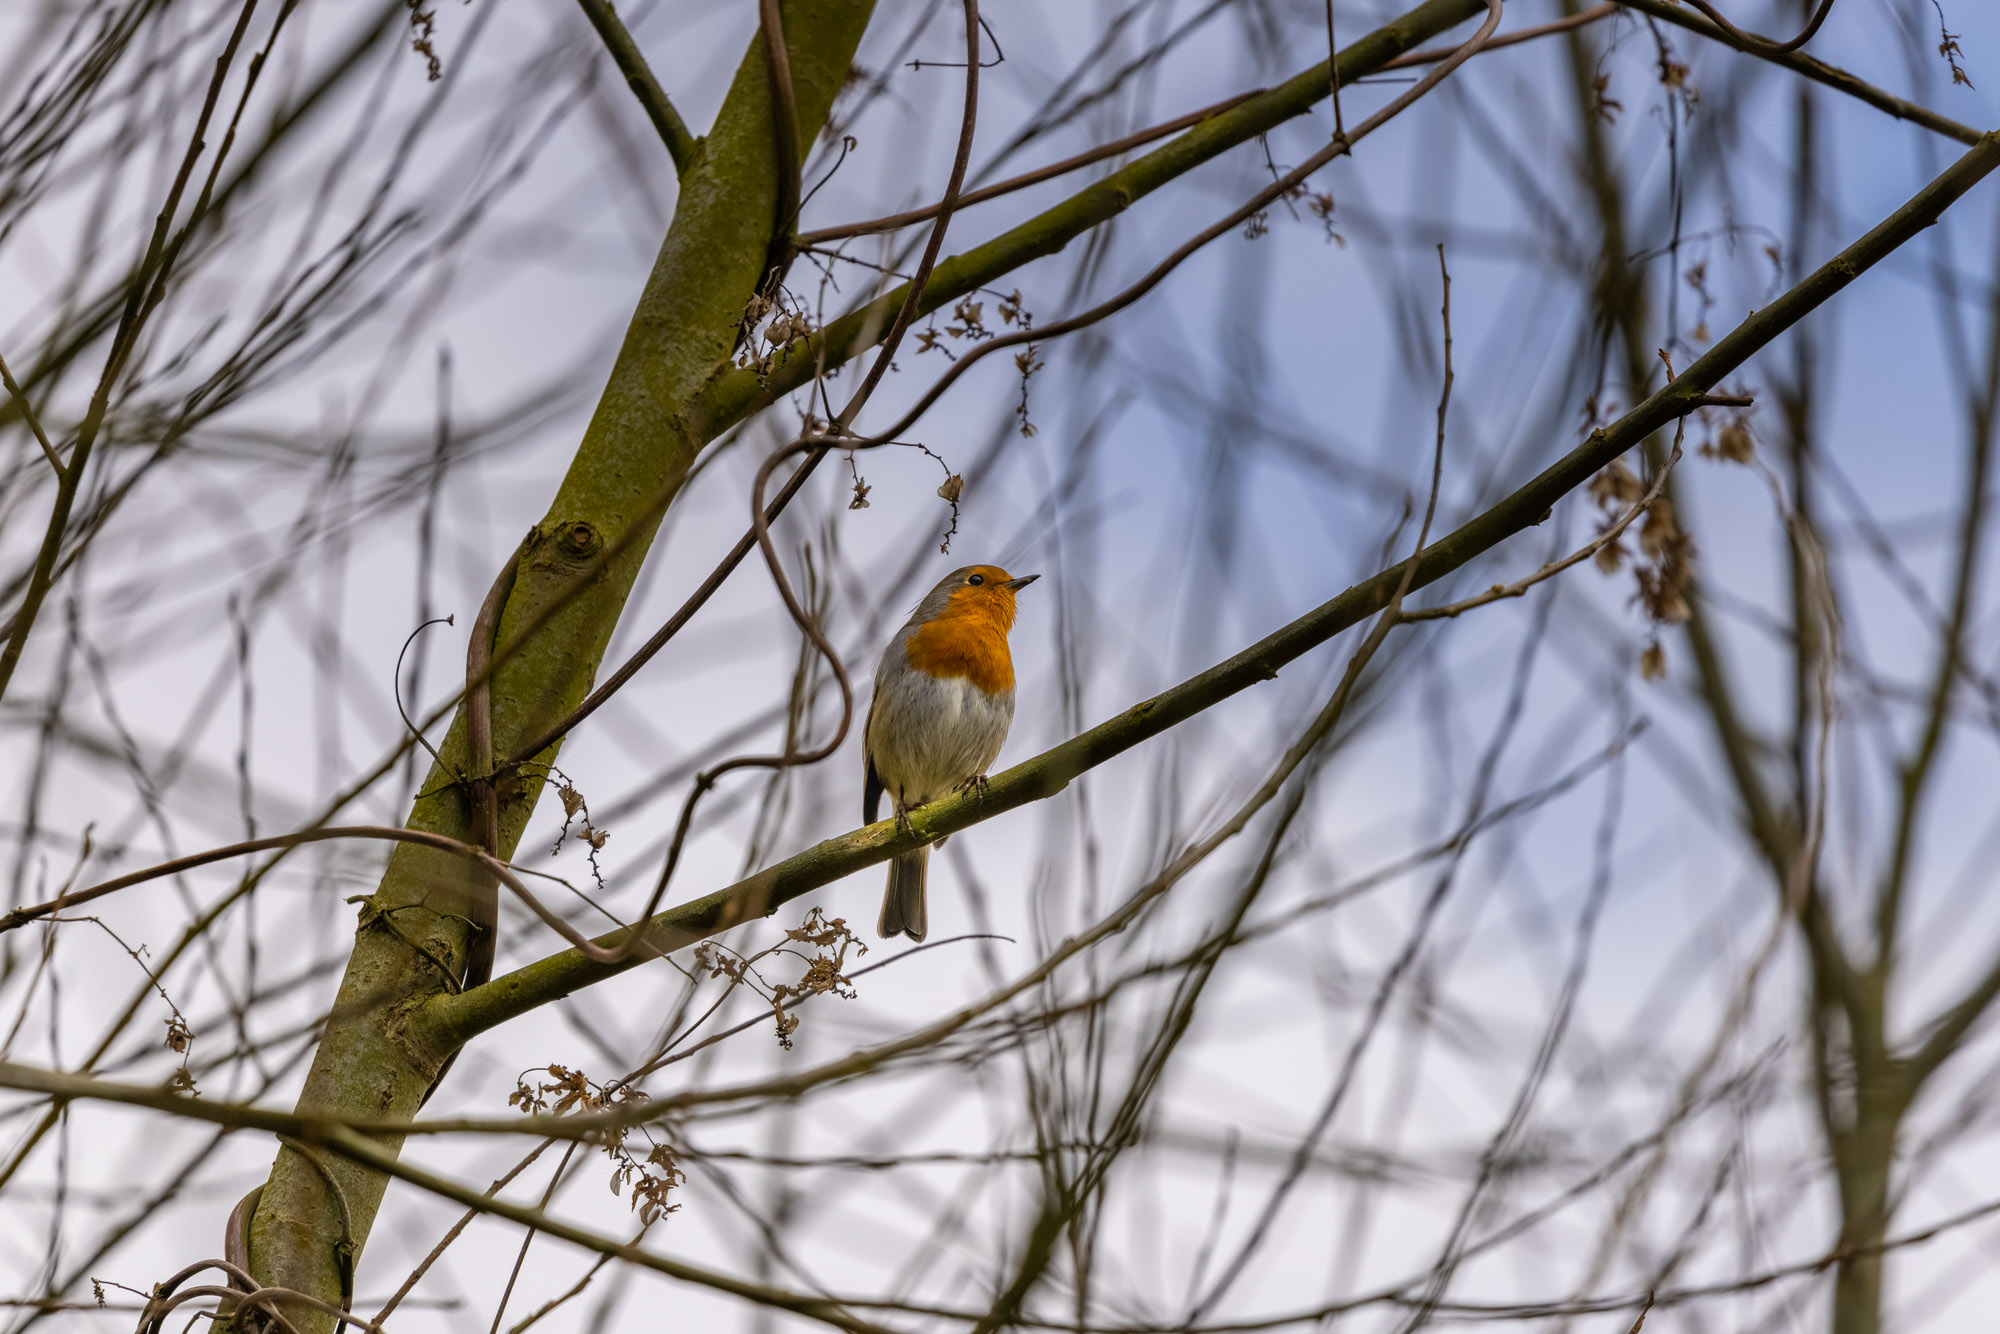 Robin perched on a branch in winter